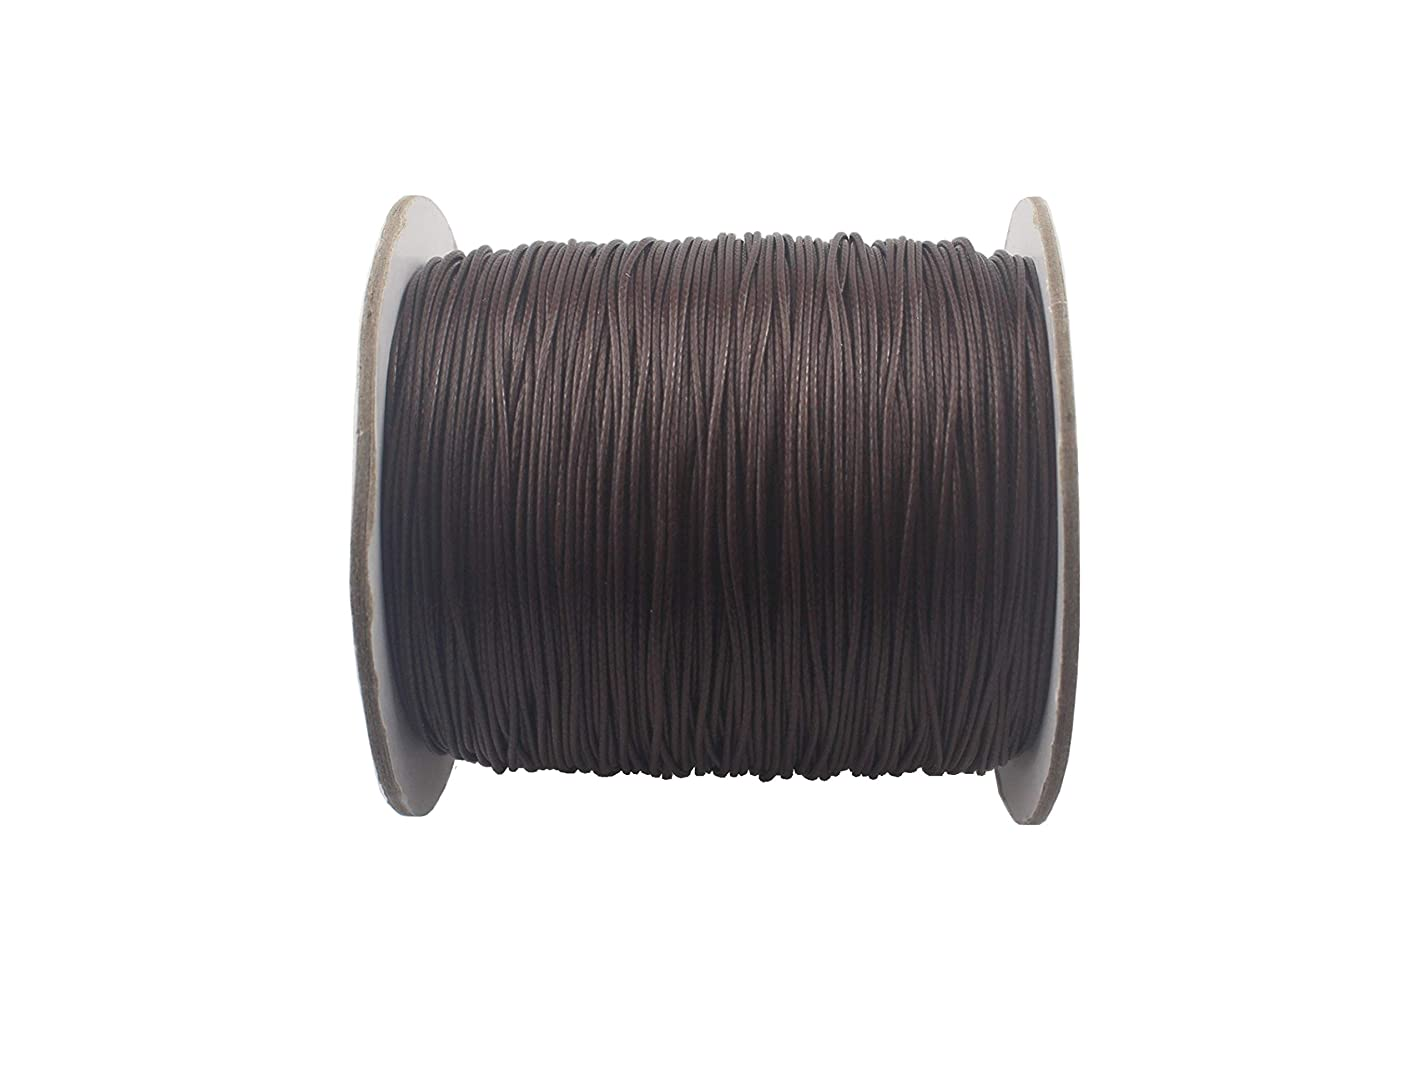 QIANHAILIZZ 150 Yards 0.5 mm Waxed Jewelry Making Cord Waxed Beading String Craft DIY Thread LXX120601805 (Coffee)